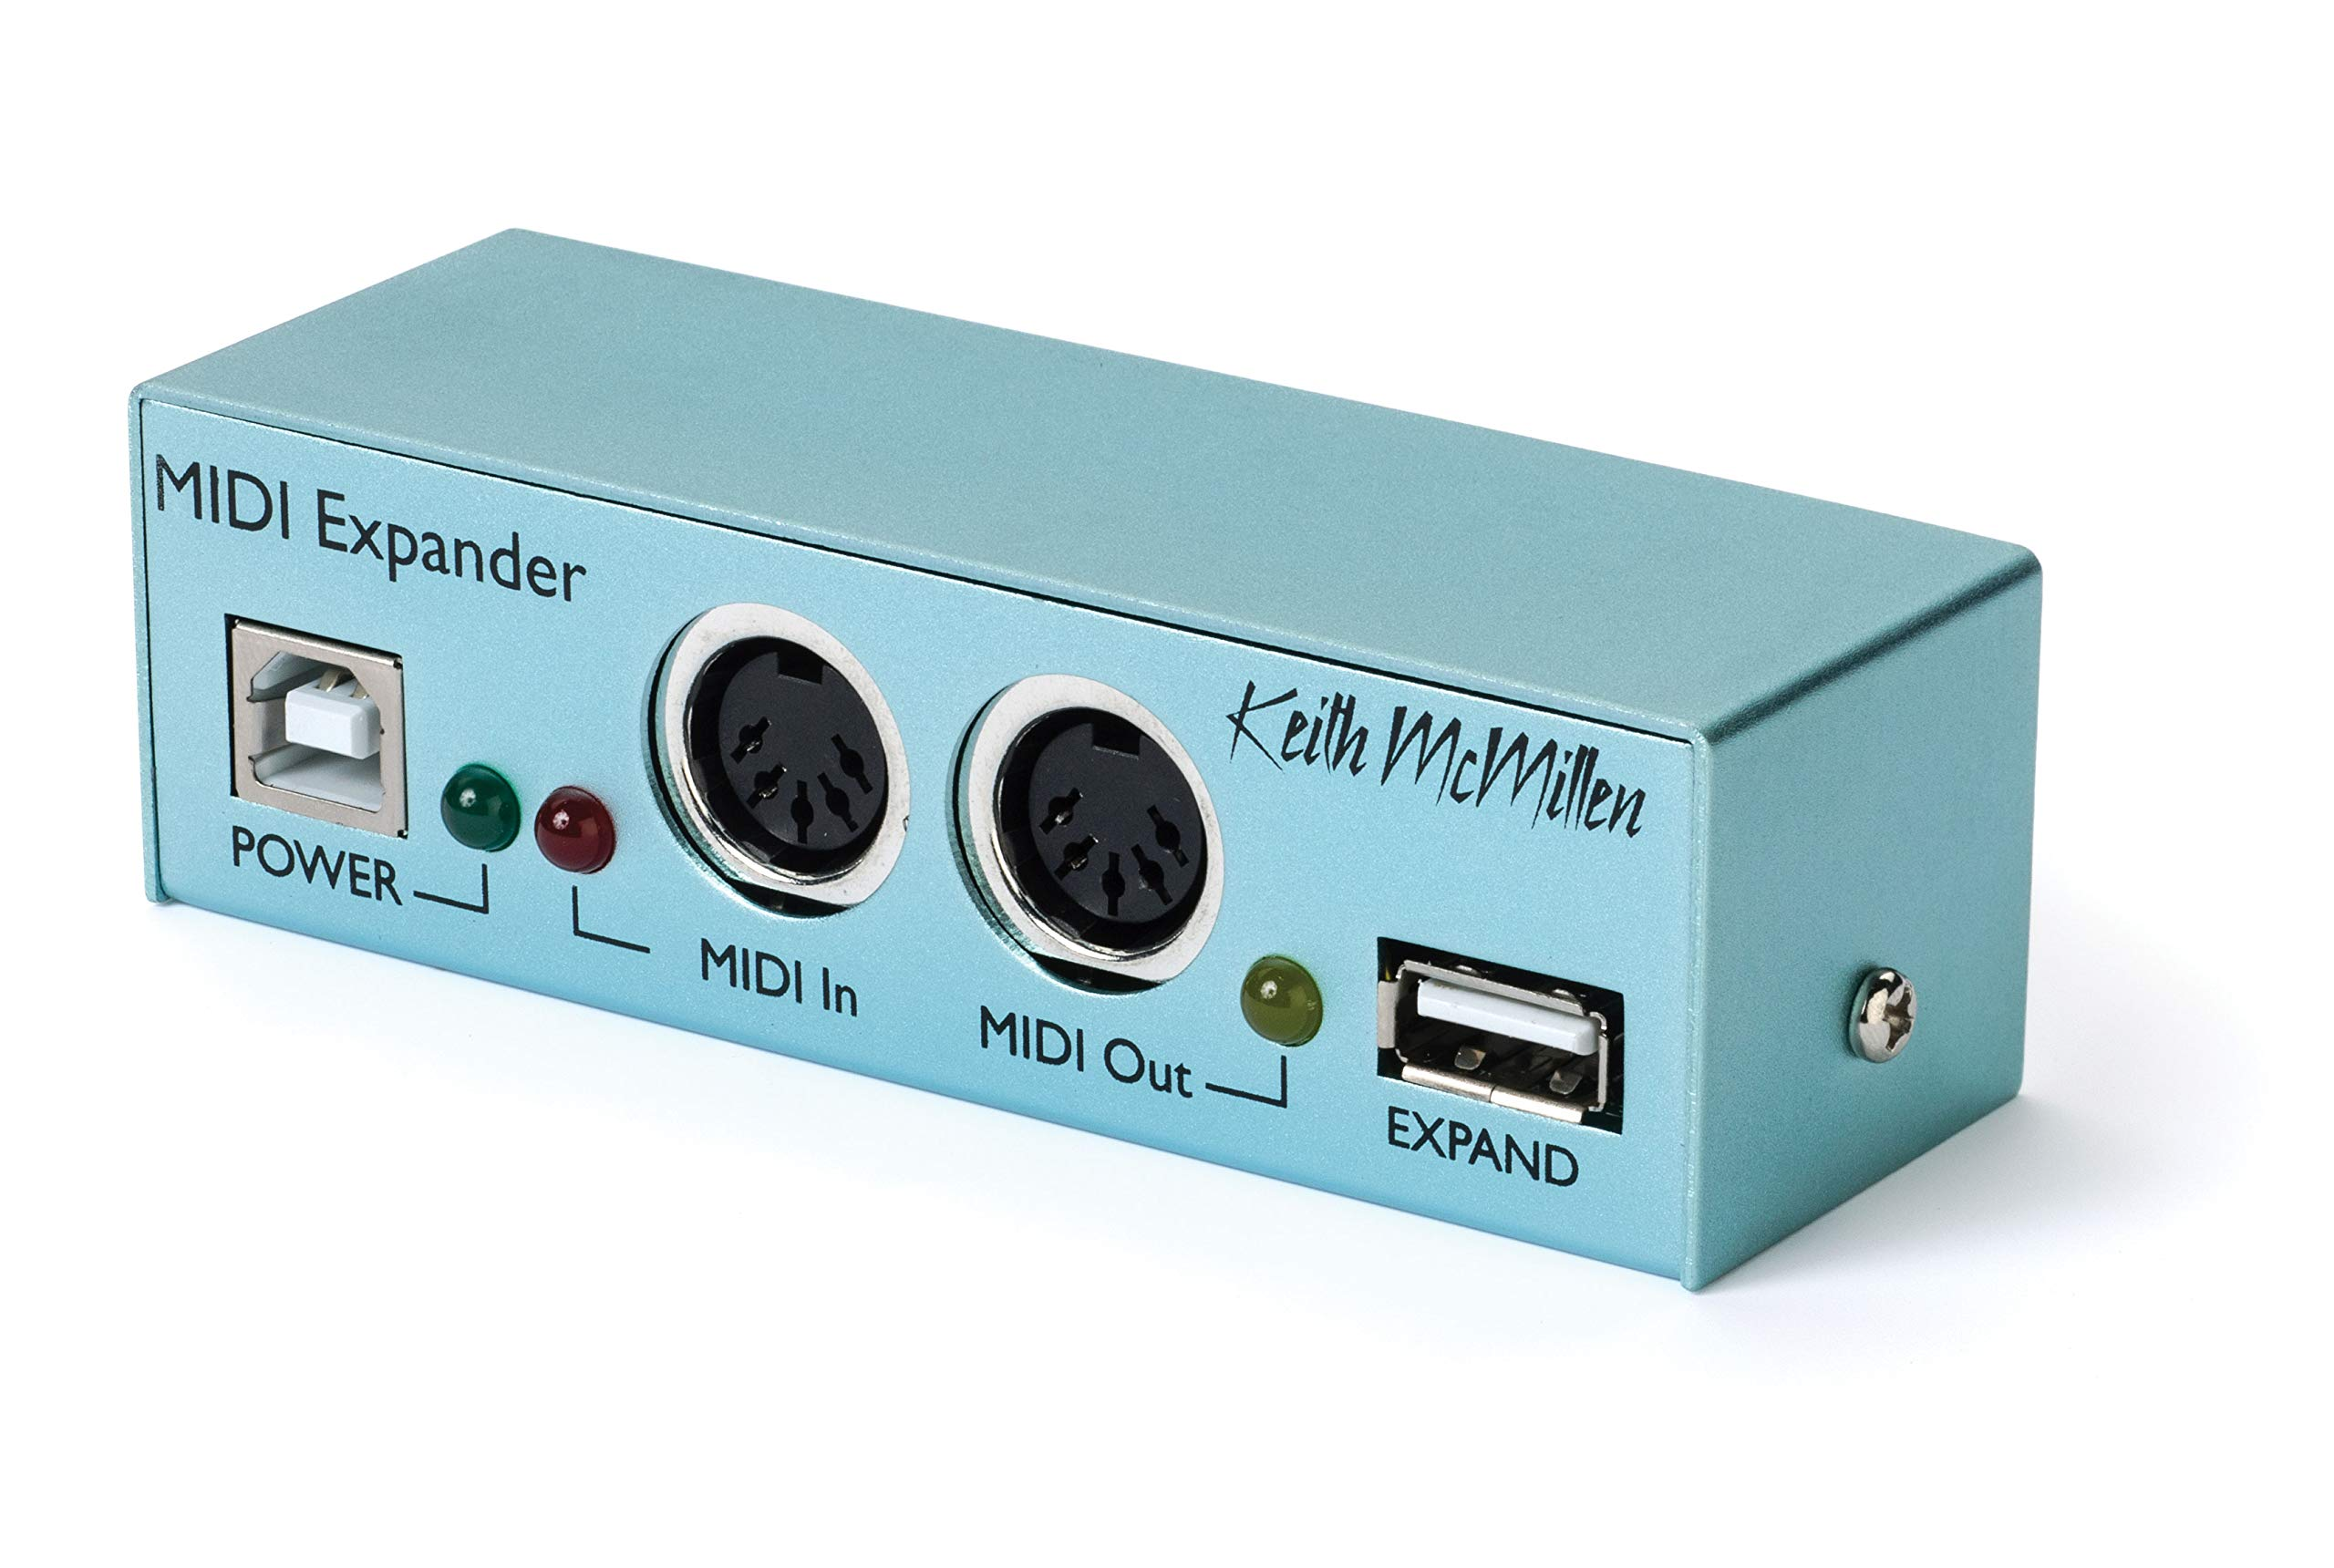 MIDI Expander for Keith McMillen Instruments by Keith McMillen Instruments